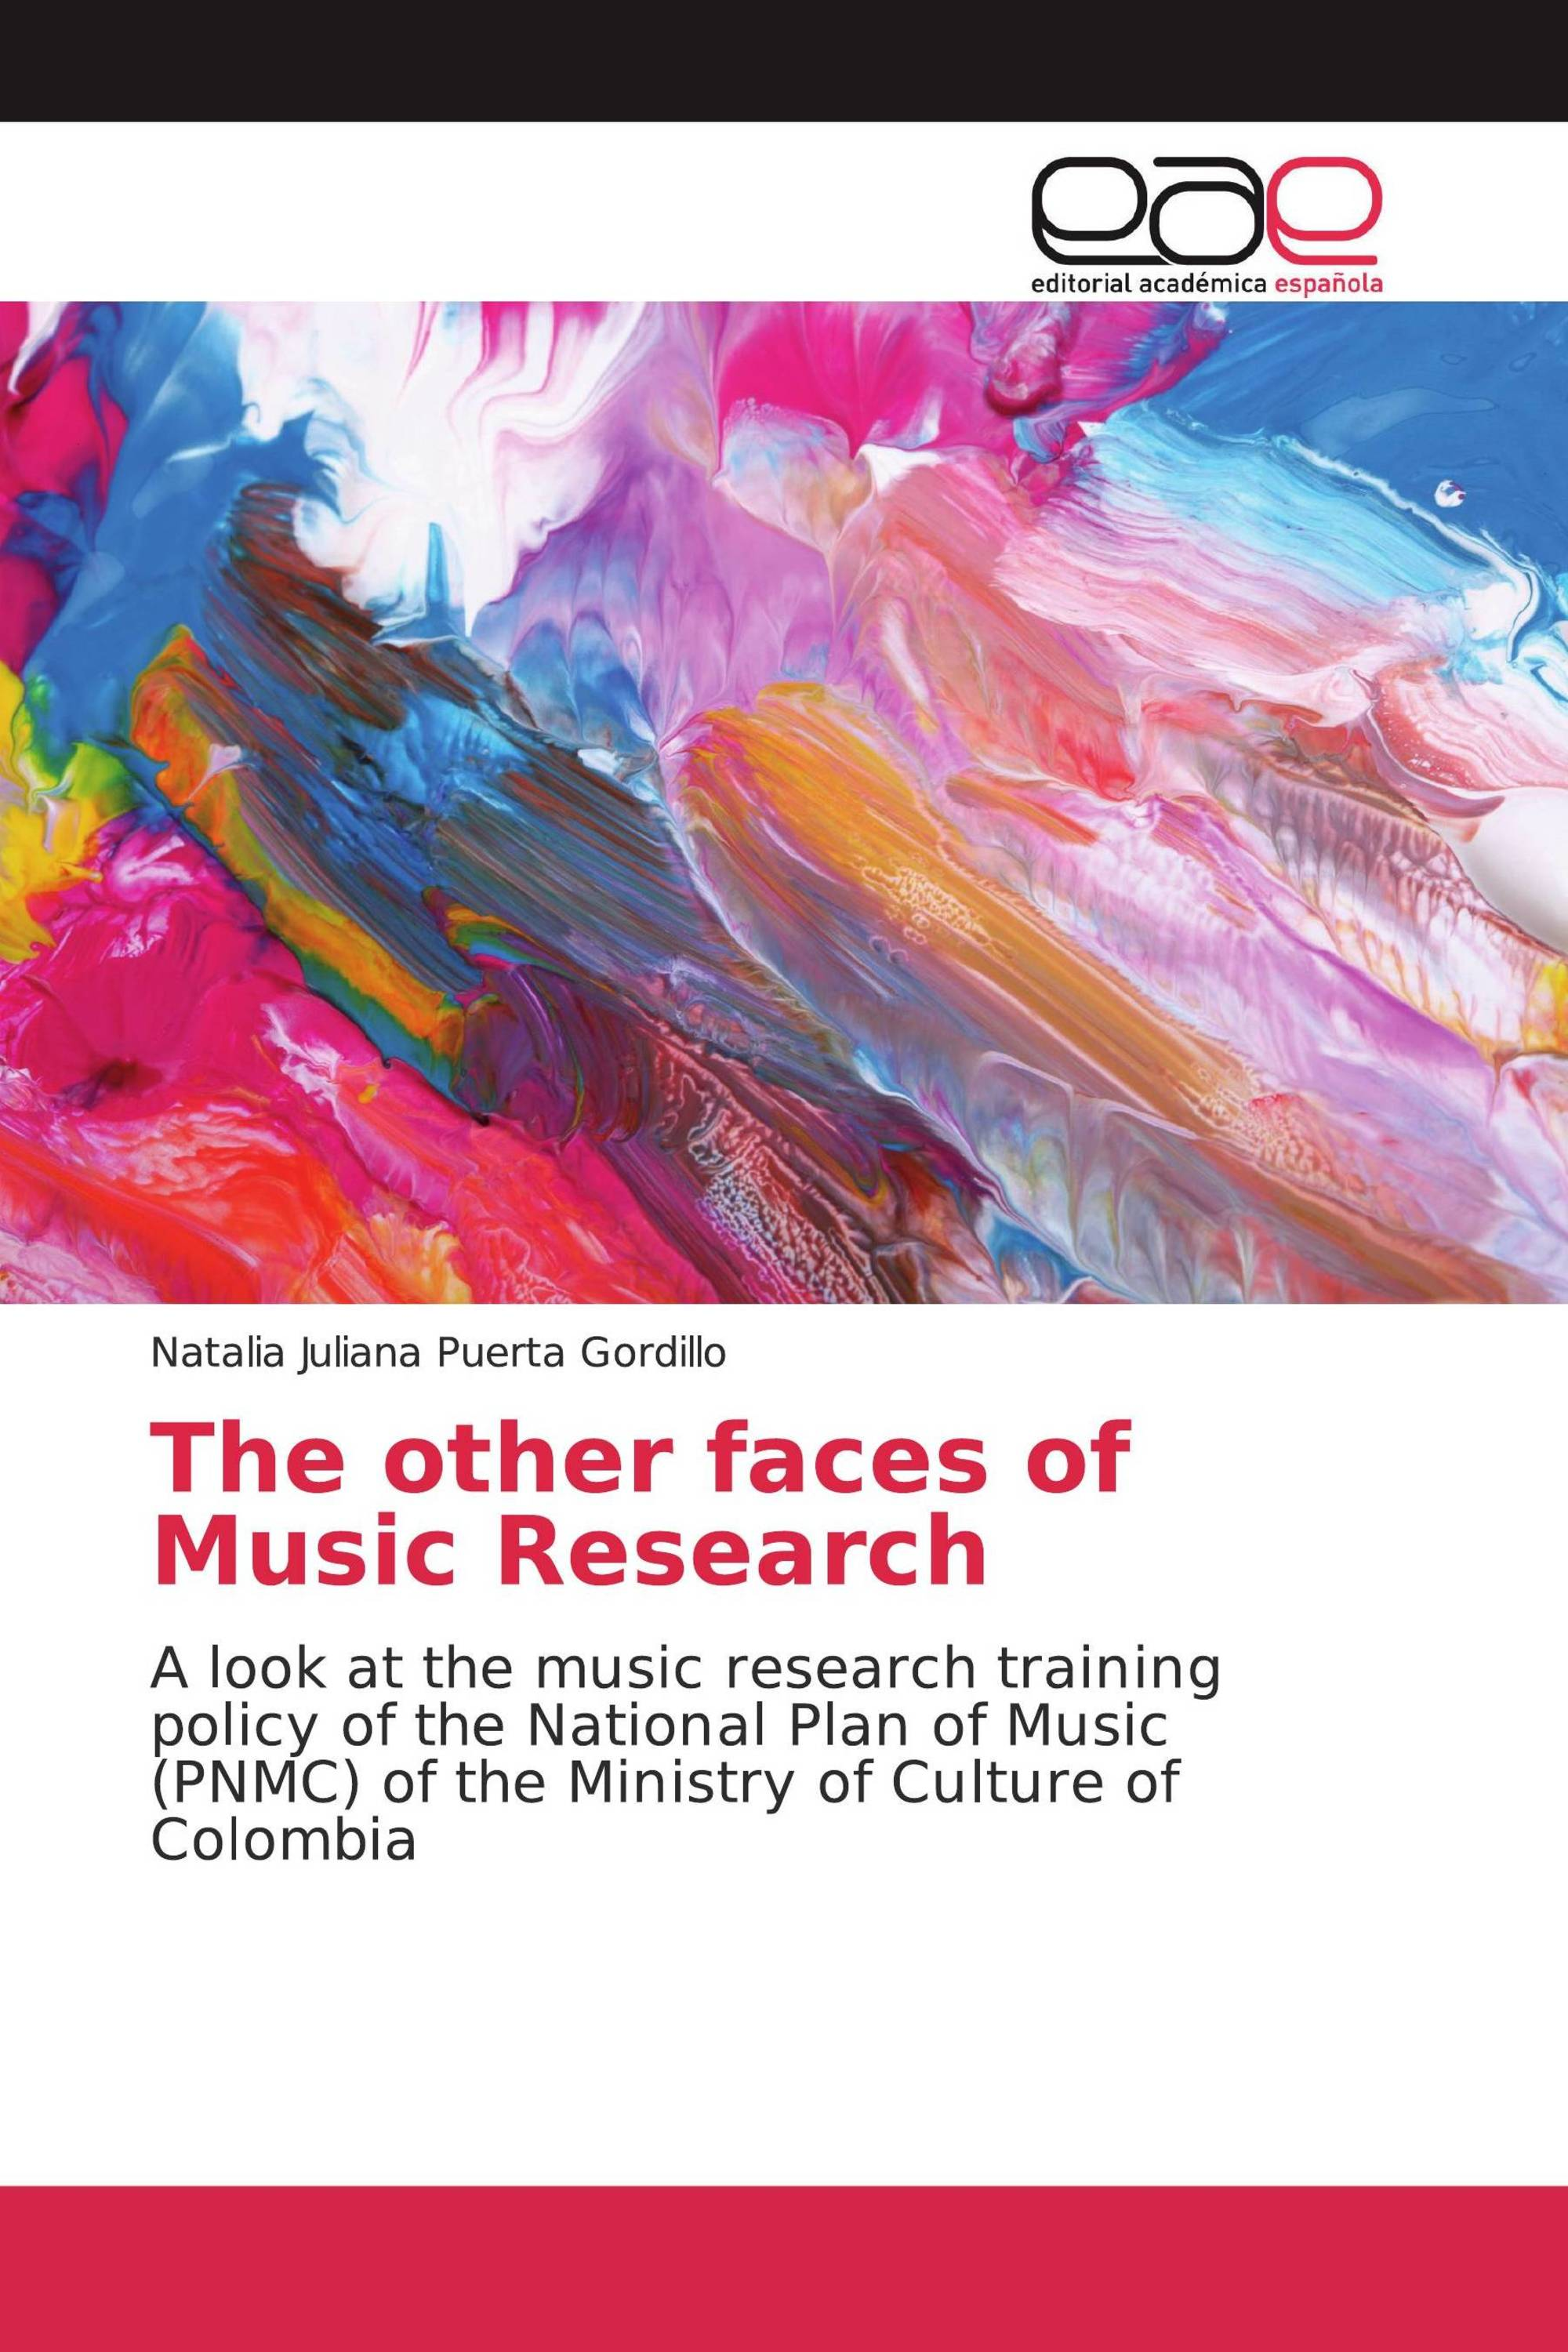 The other faces of Music Research